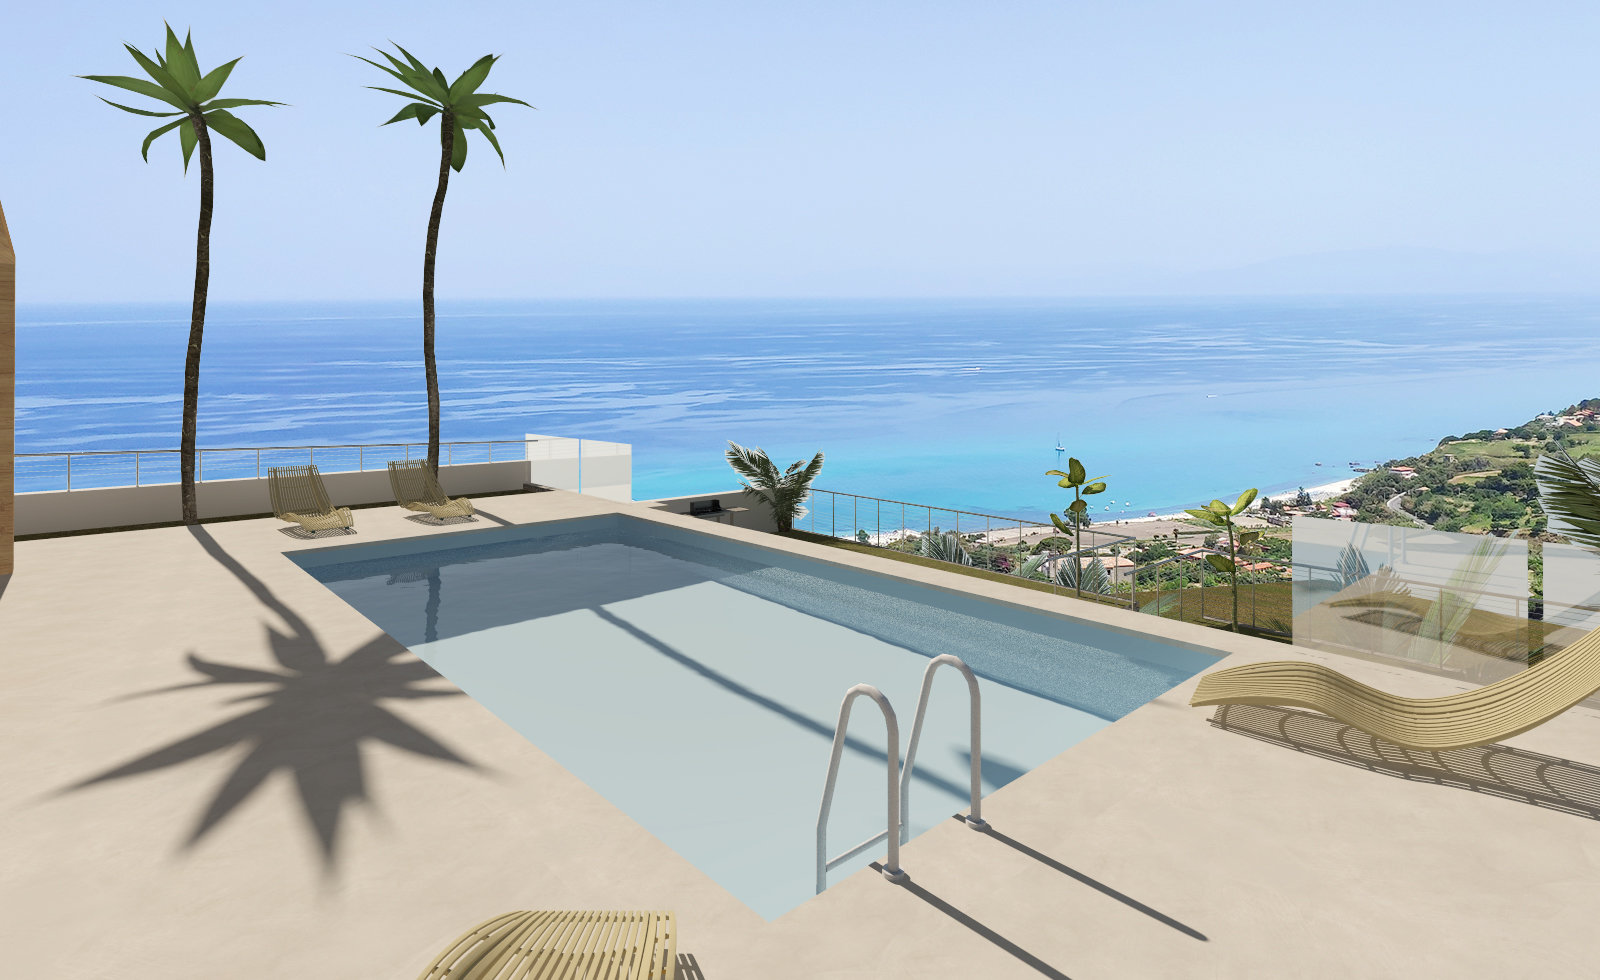 Villa with beach access - pool possible